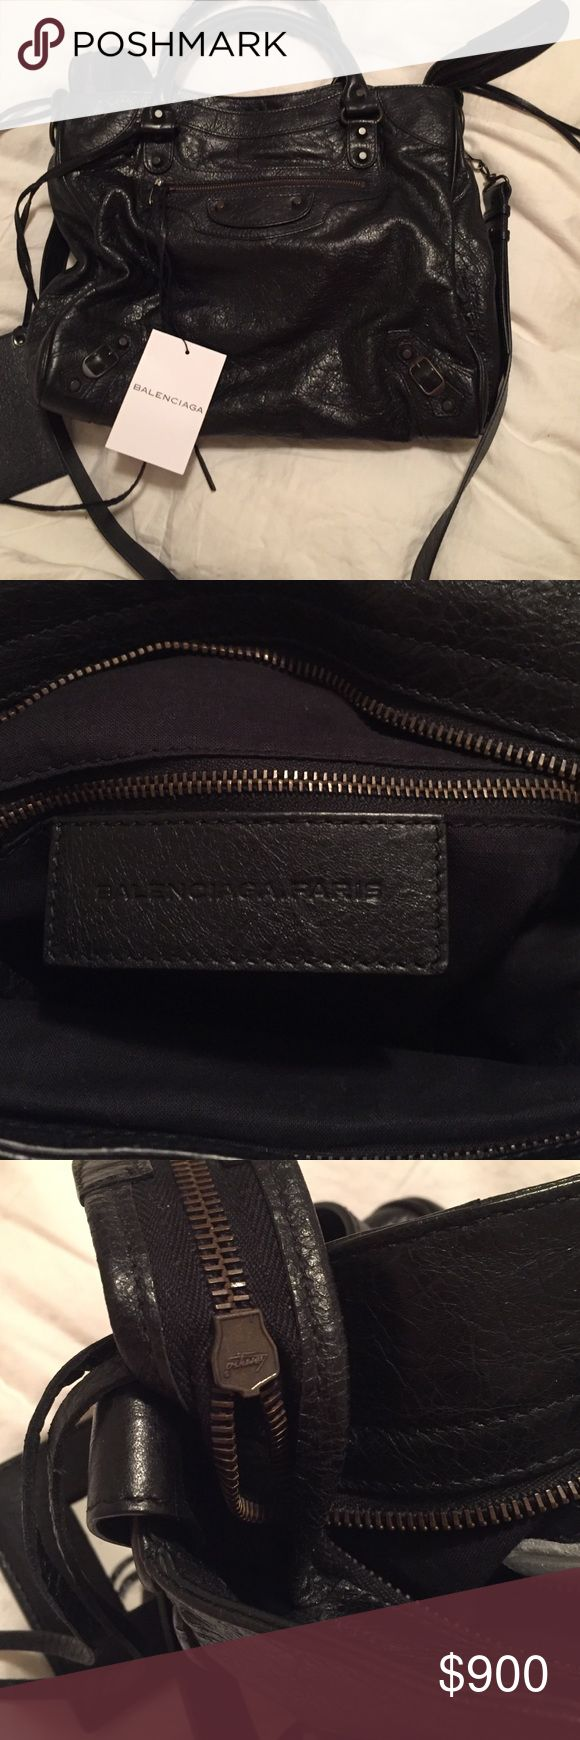 Brand New Authentic Balenciaga Velo Black Handbag Beautiful Brand New-Authentic Balenciaga Velo Black Leather Handbag. Retail tag attached.silver hardware-Dustbag, authenticity cards flawless-selling for a son in an estate sale as his mother recently passed-(He wants me too get a certain price-had it listed before and he never wanted me to go that low in price) I have sold for years on eBay) he never sold anything and asked me too Open to all offers. No trades thank you. Measures 14 in…